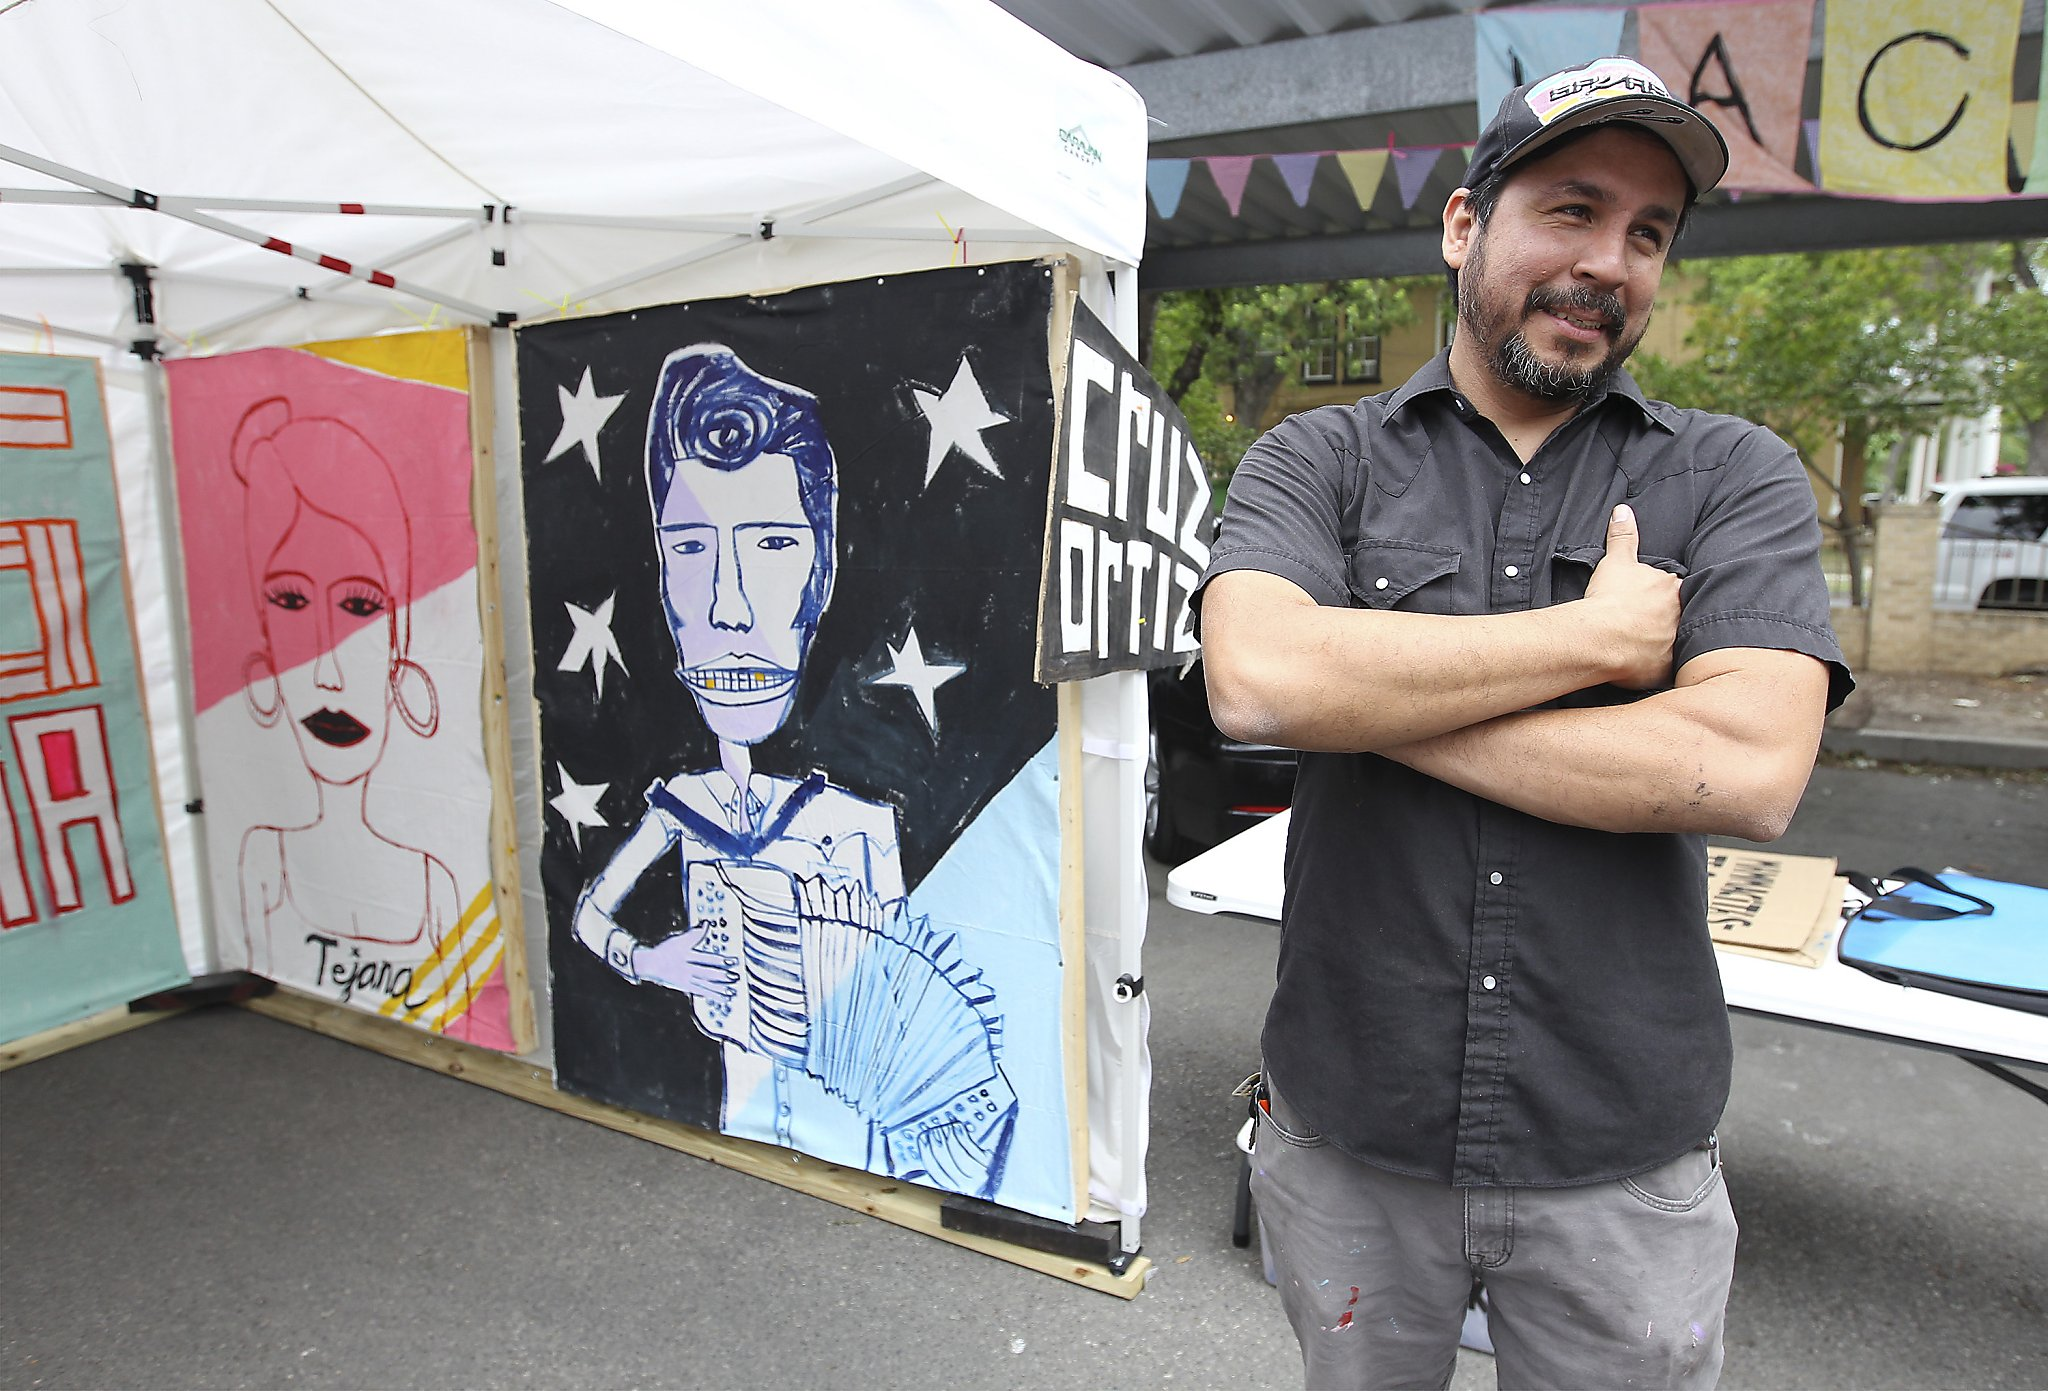 Artist Cruz Ortiz made a name for himself in San Antonio. Now he's returning home to Houston